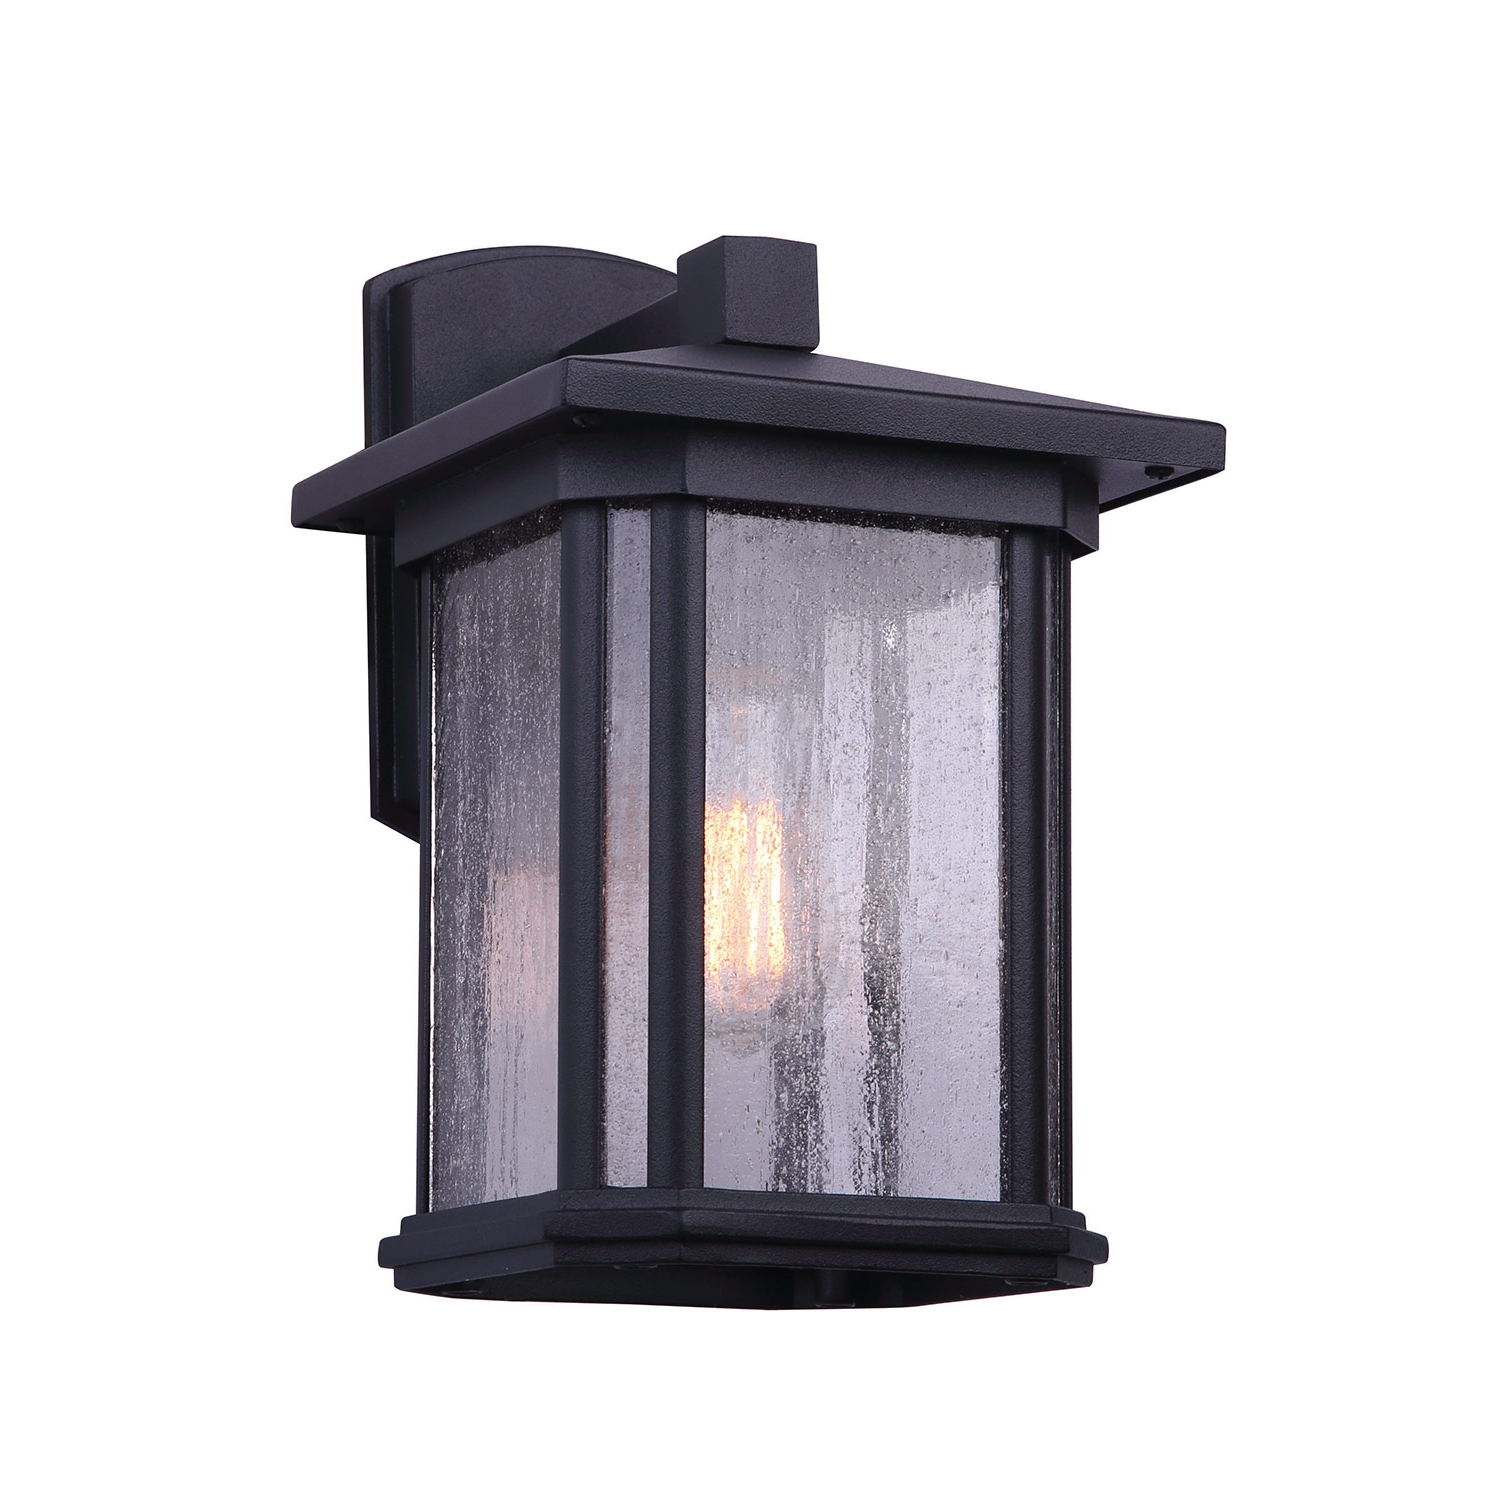 Emaje Black Seeded Glass Outdoor Wall Lanterns With Regard To Most Recently Released Bennington Clio 1 Bulb Black Outdoor Light Wall Lantern (View 4 of 15)